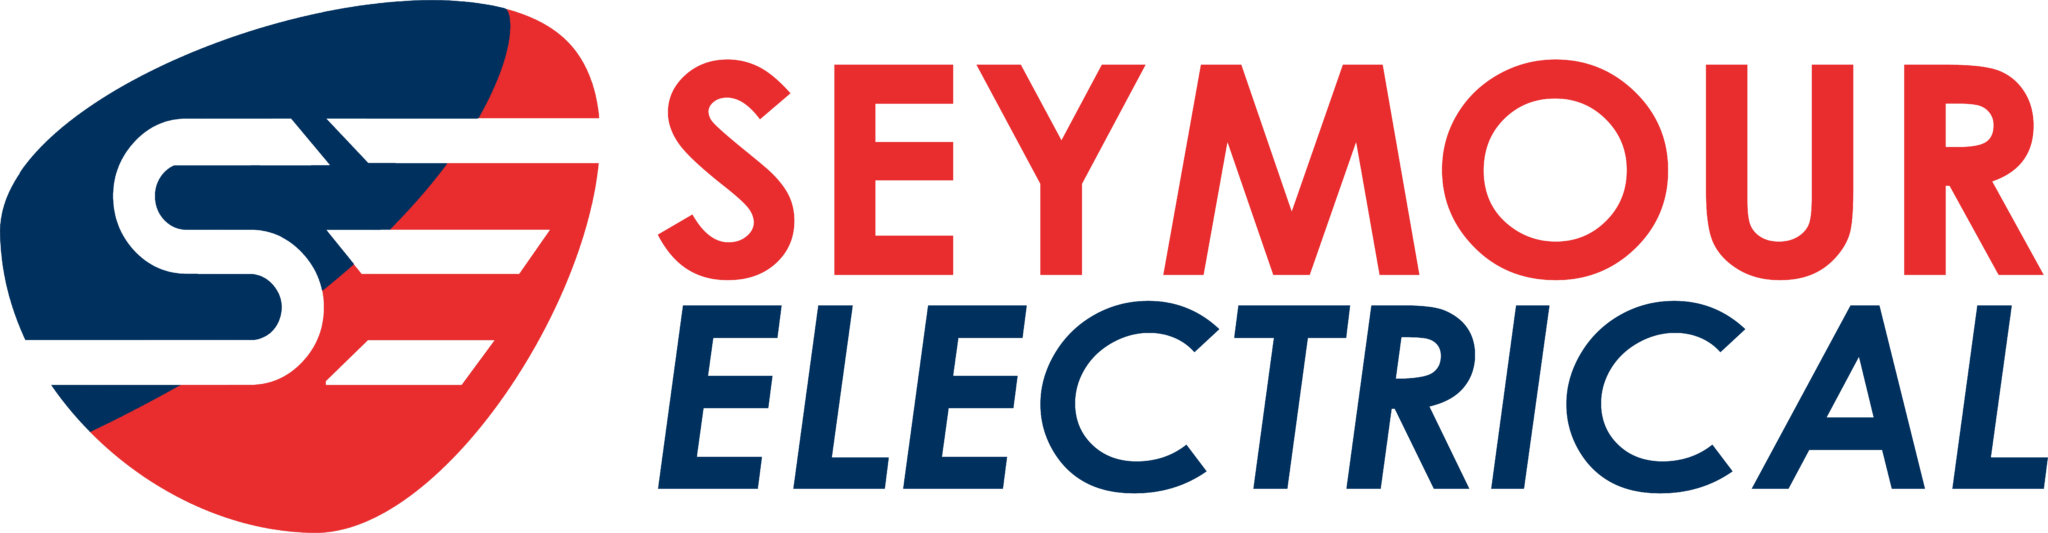 Seymour Electrical